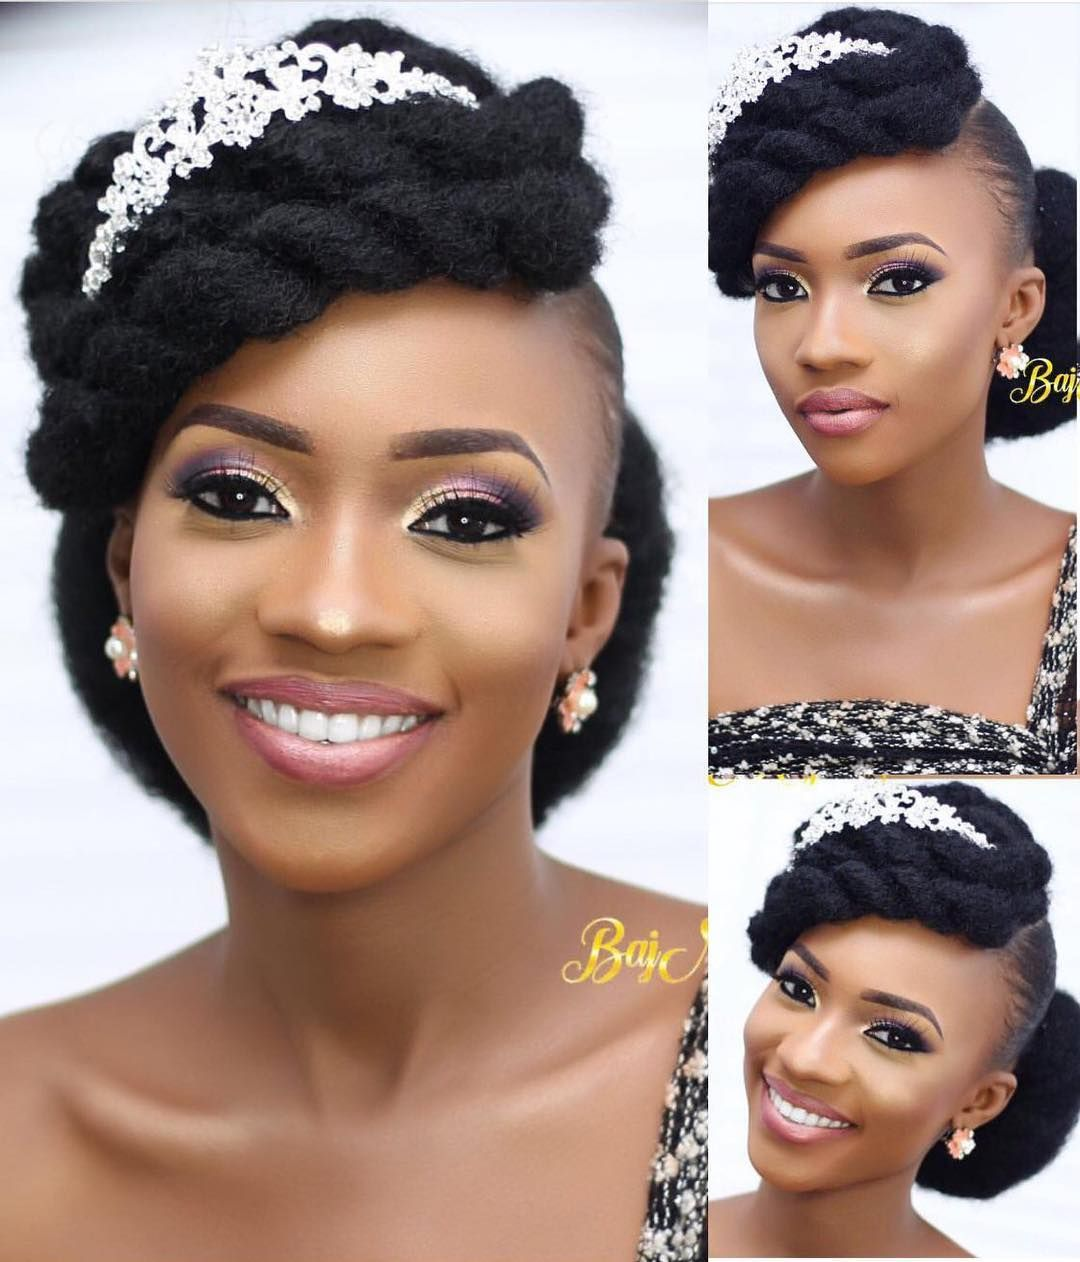 45 Charming Bride S Wedding Hairstyles For Naturally Curly: Cutie 😍😘 Makeup 💄 By @bajmajic 🙌🏾💯 #NigerianWedding In